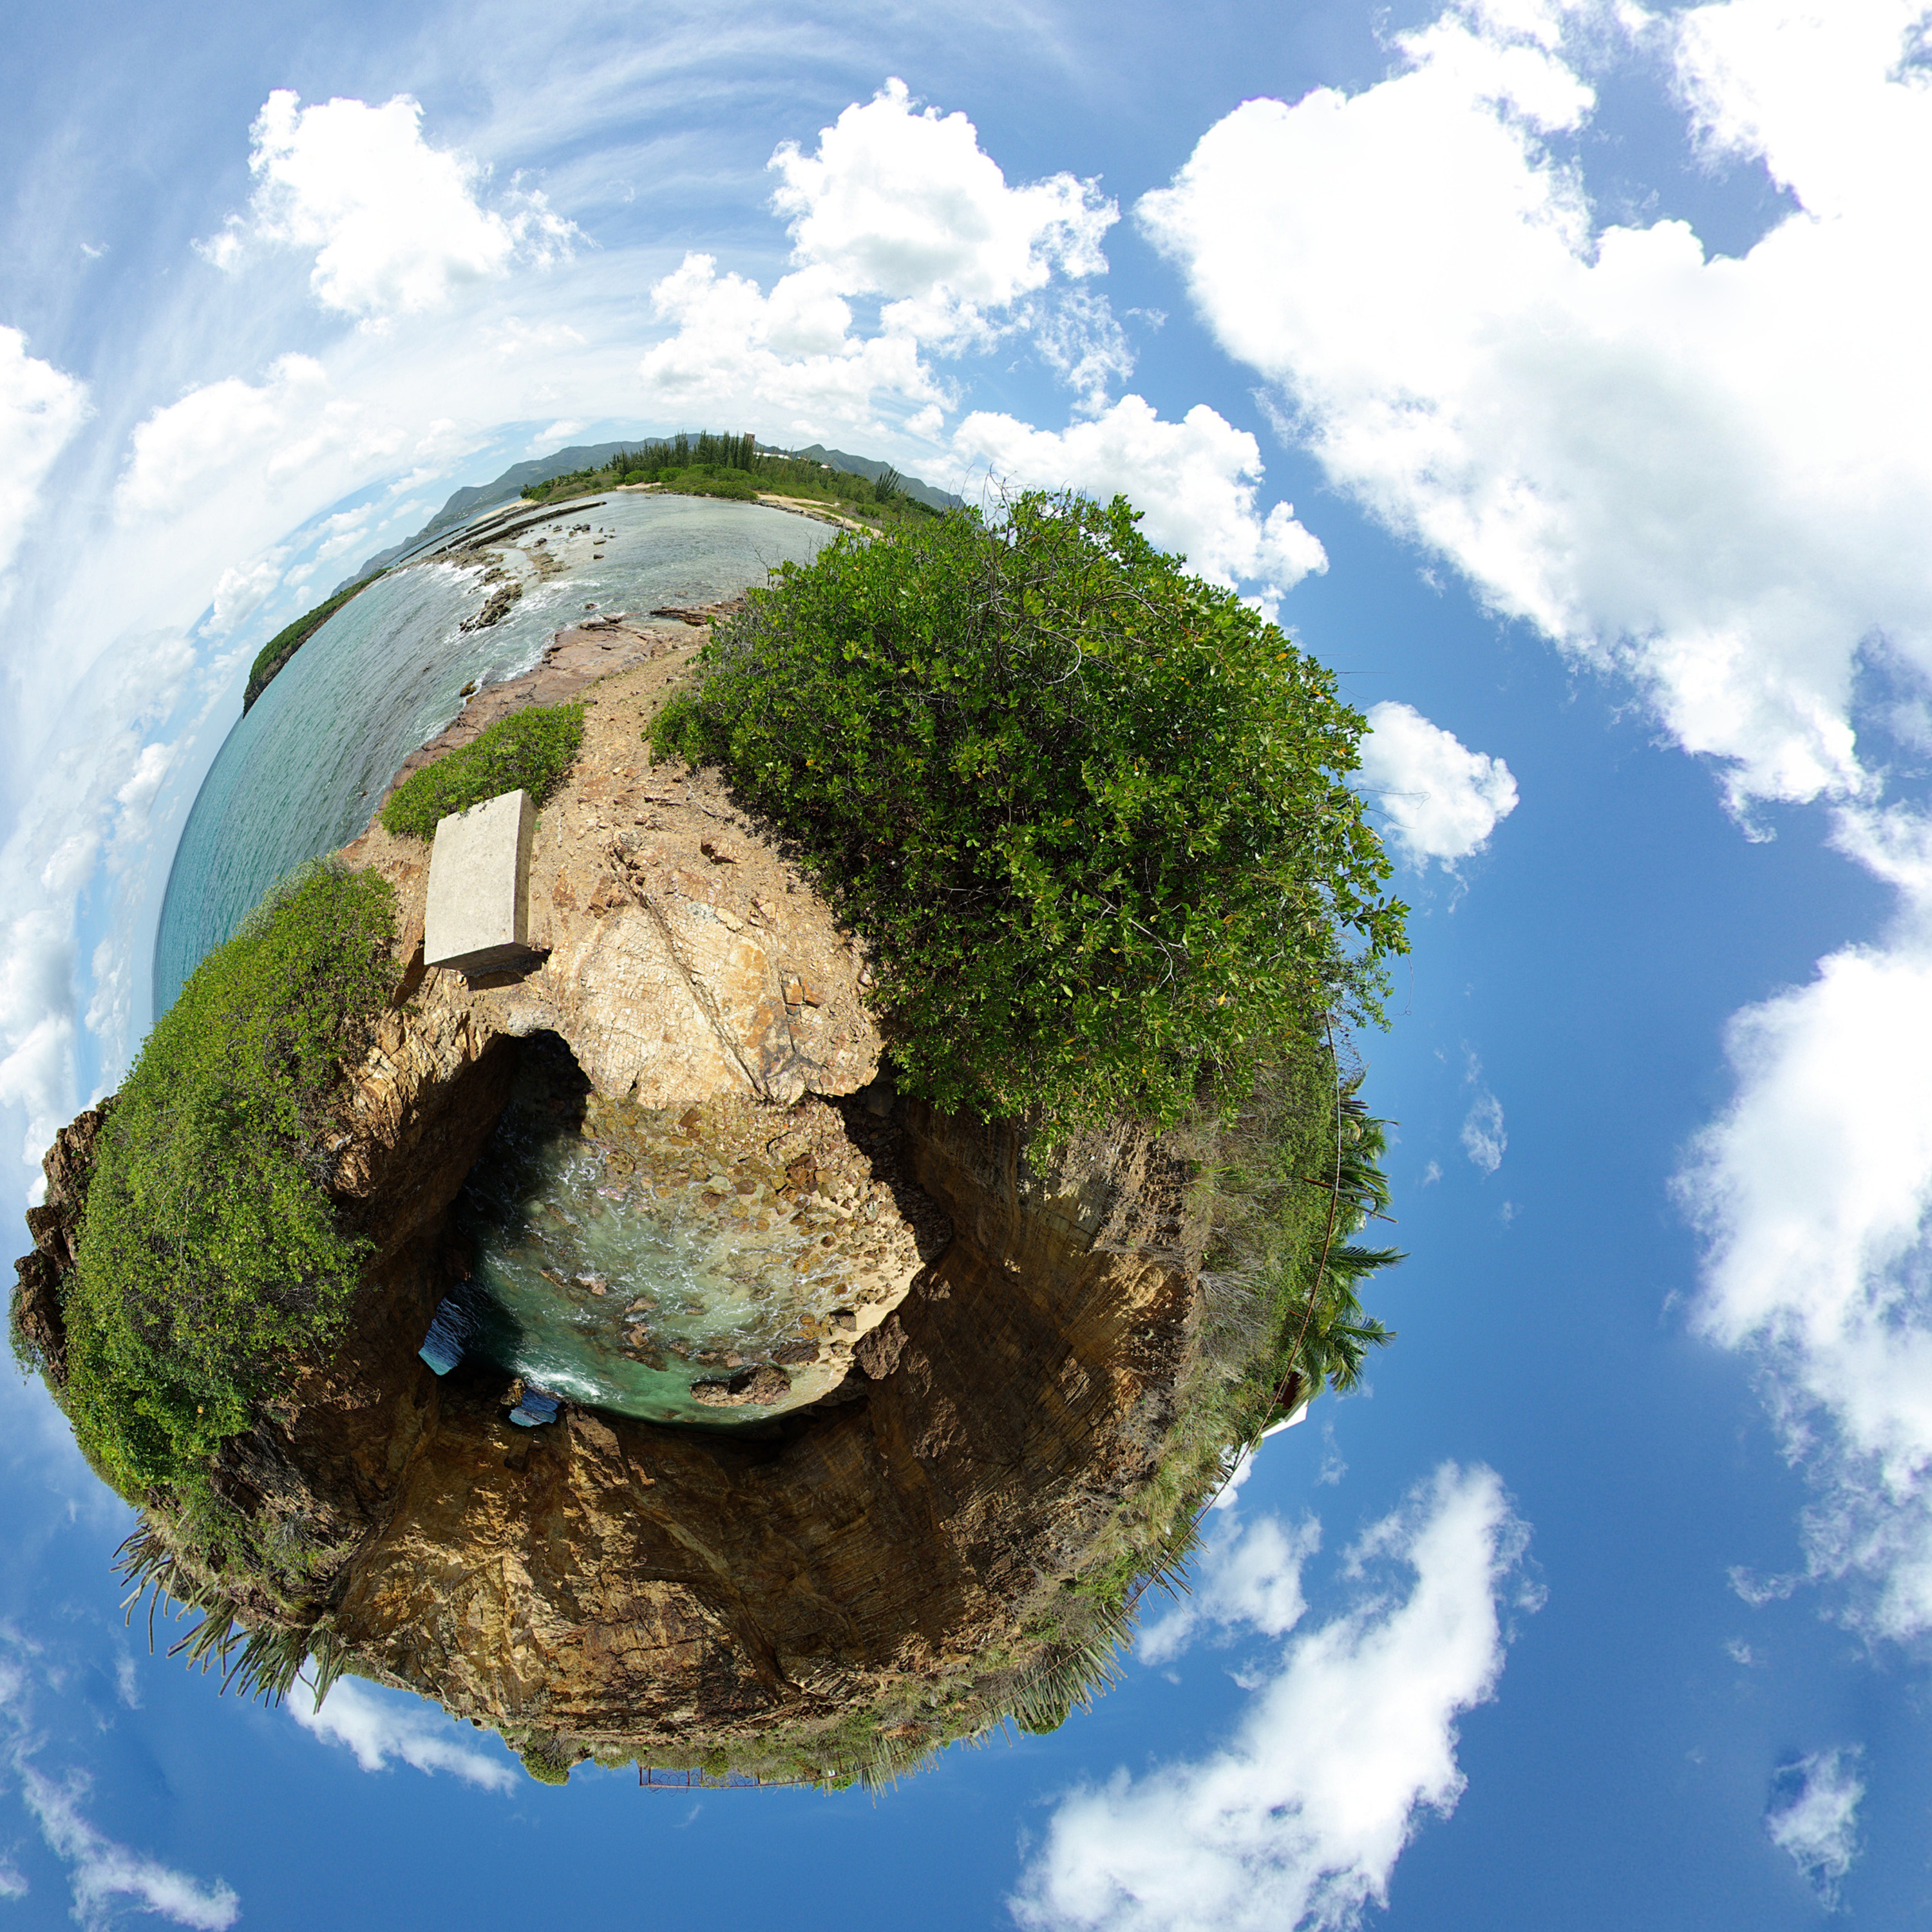 Everything about the 360 Degree Photography